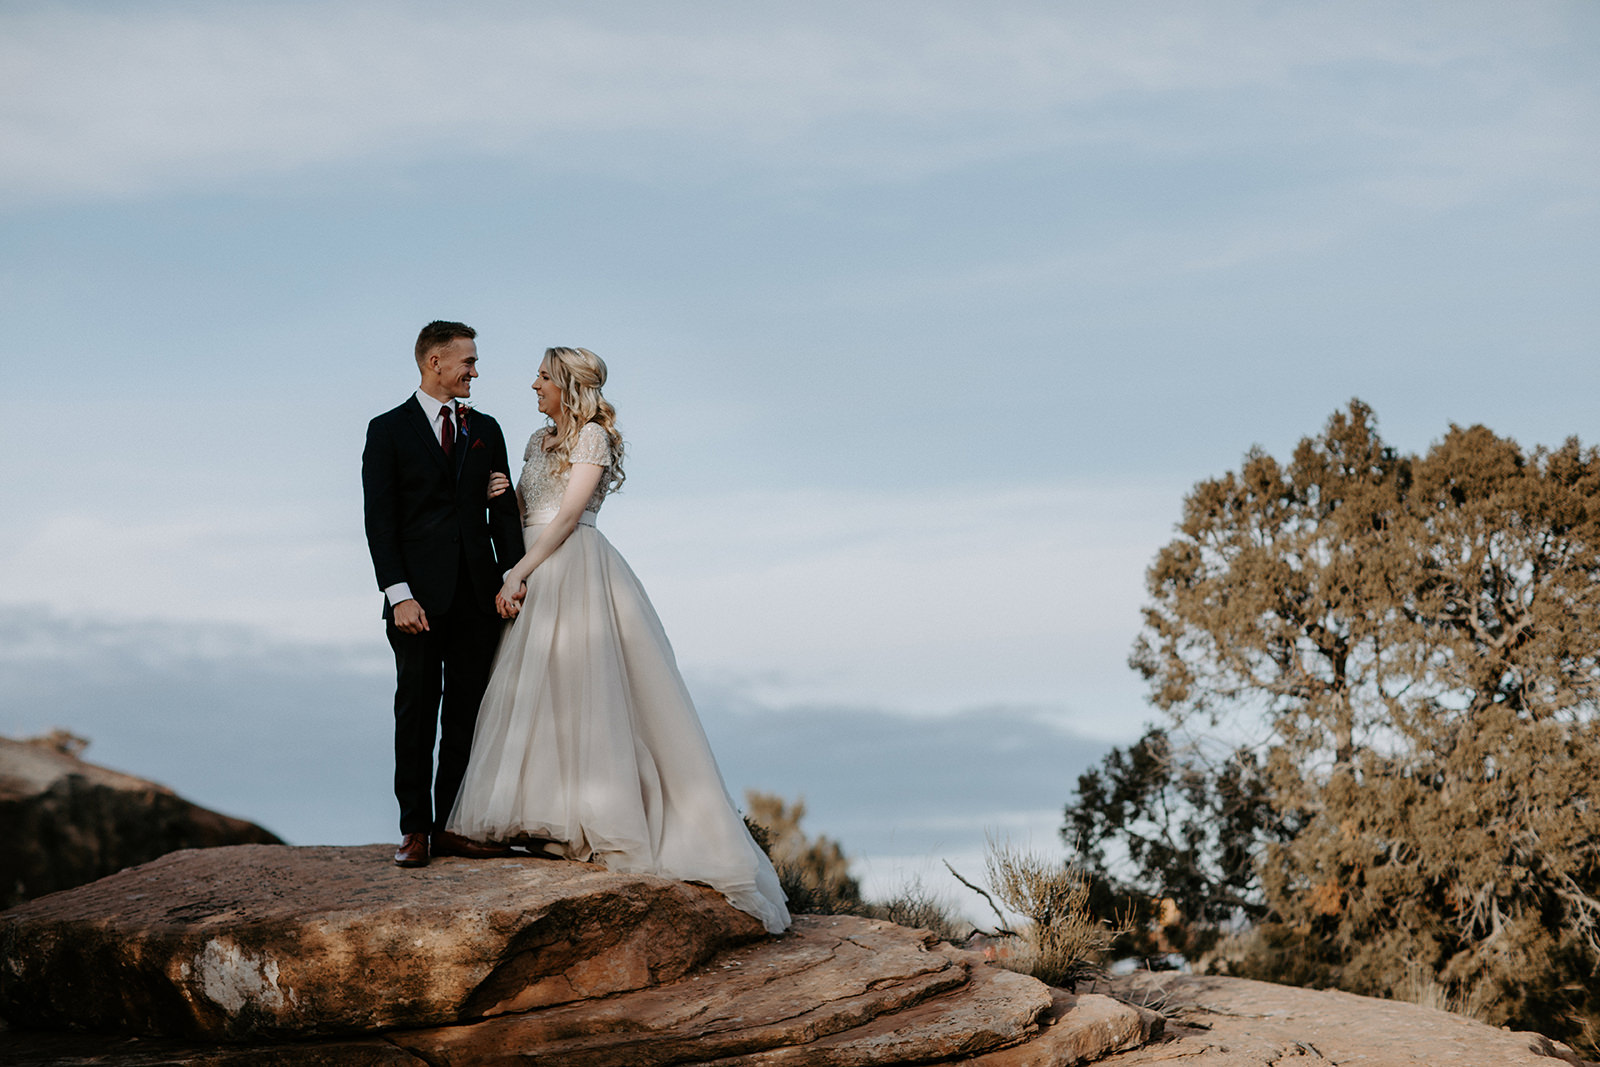 Just married couple standing on red sandstone with blue skies behind them